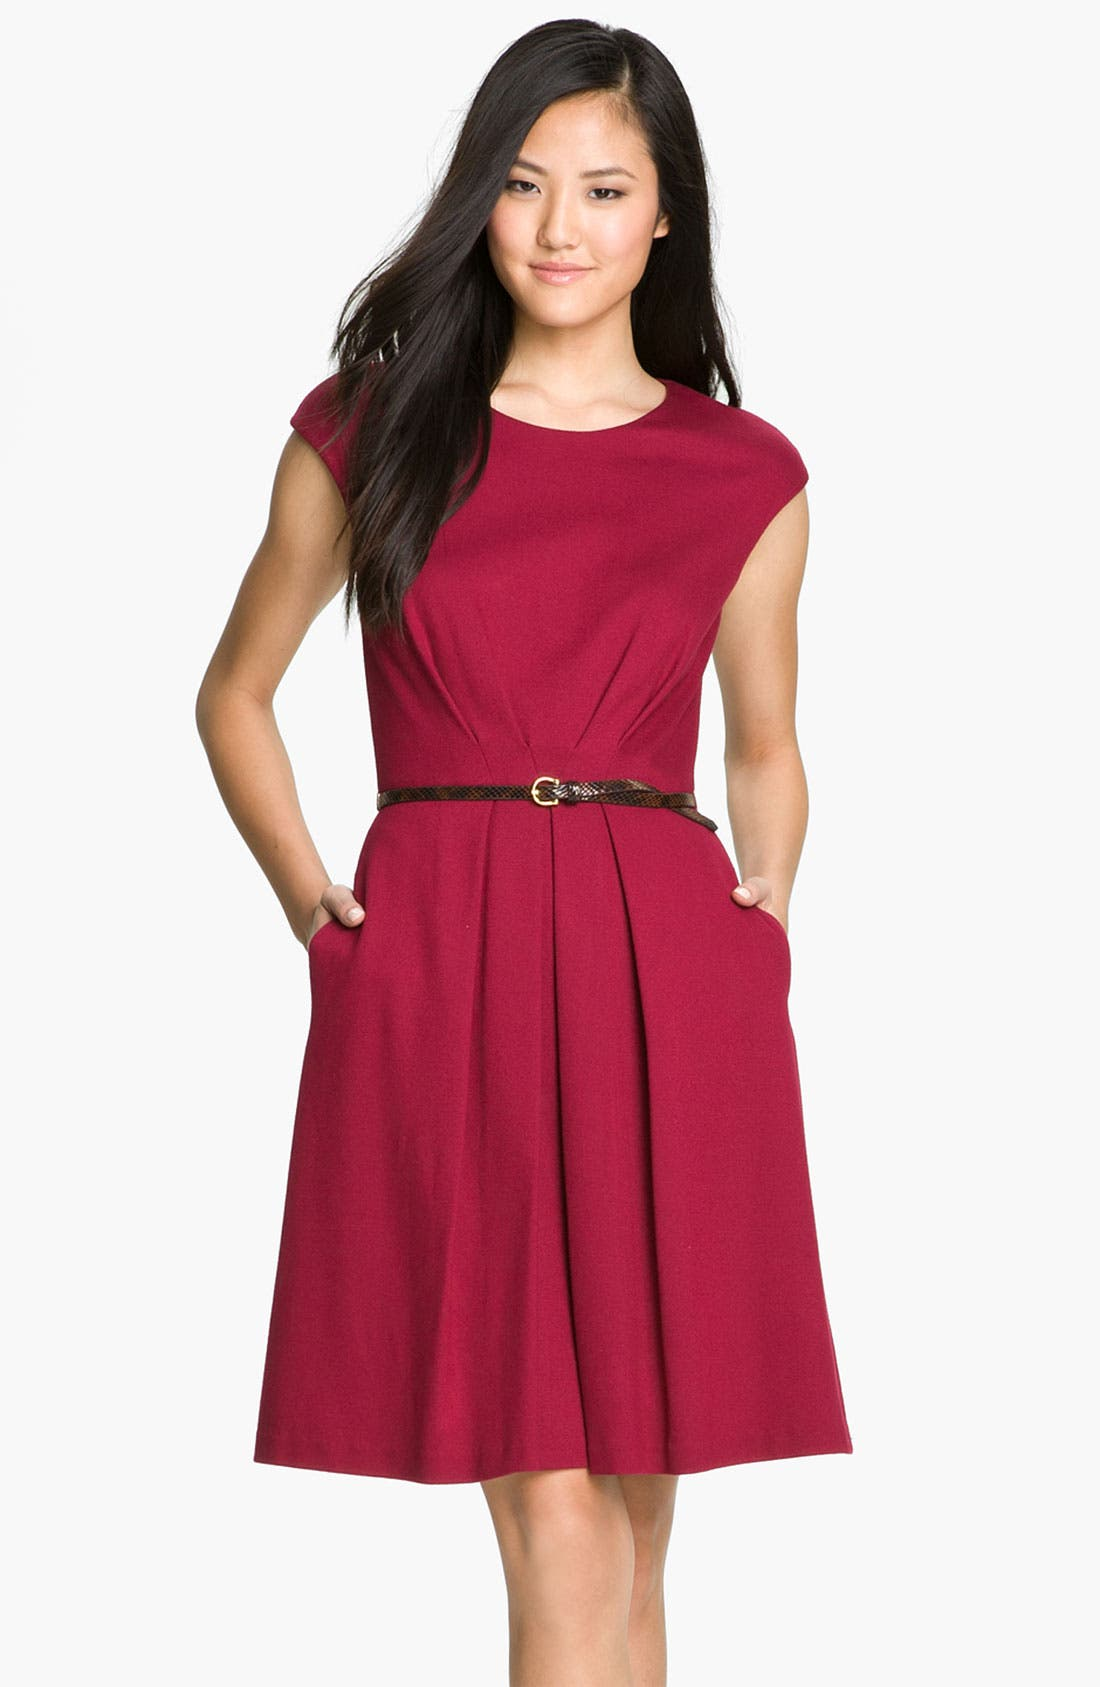 Alternate Image 1 Selected - Maggy London Belted Ponte Knit Fit & Flare Dress